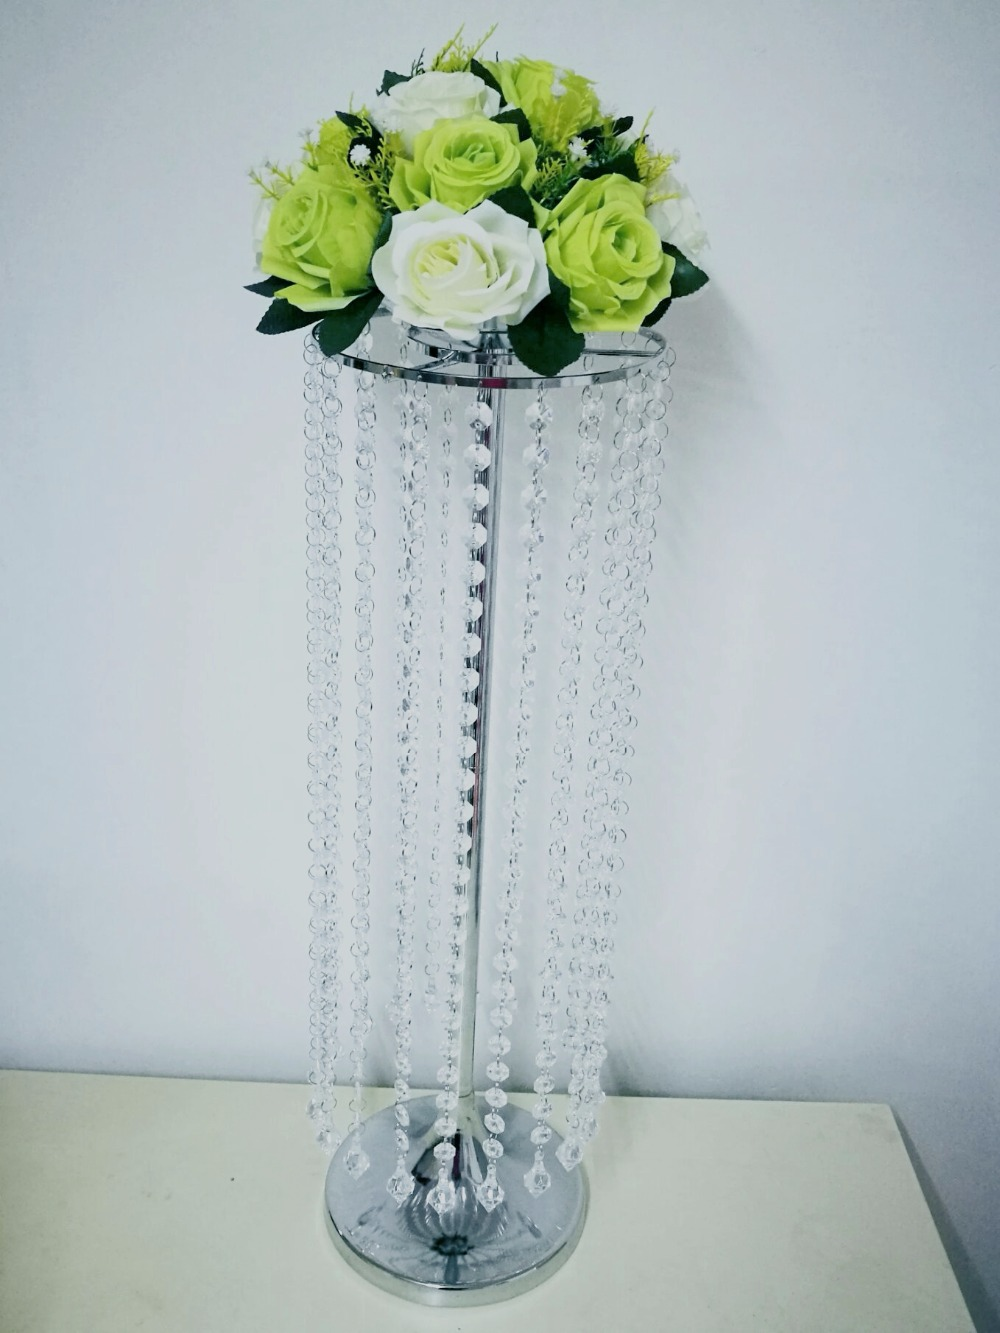 Tall 70cm Iron Stand Flower Vase Crystal Wedding table centerpieces Flower Candle Holder party event favors T stage Road Lead